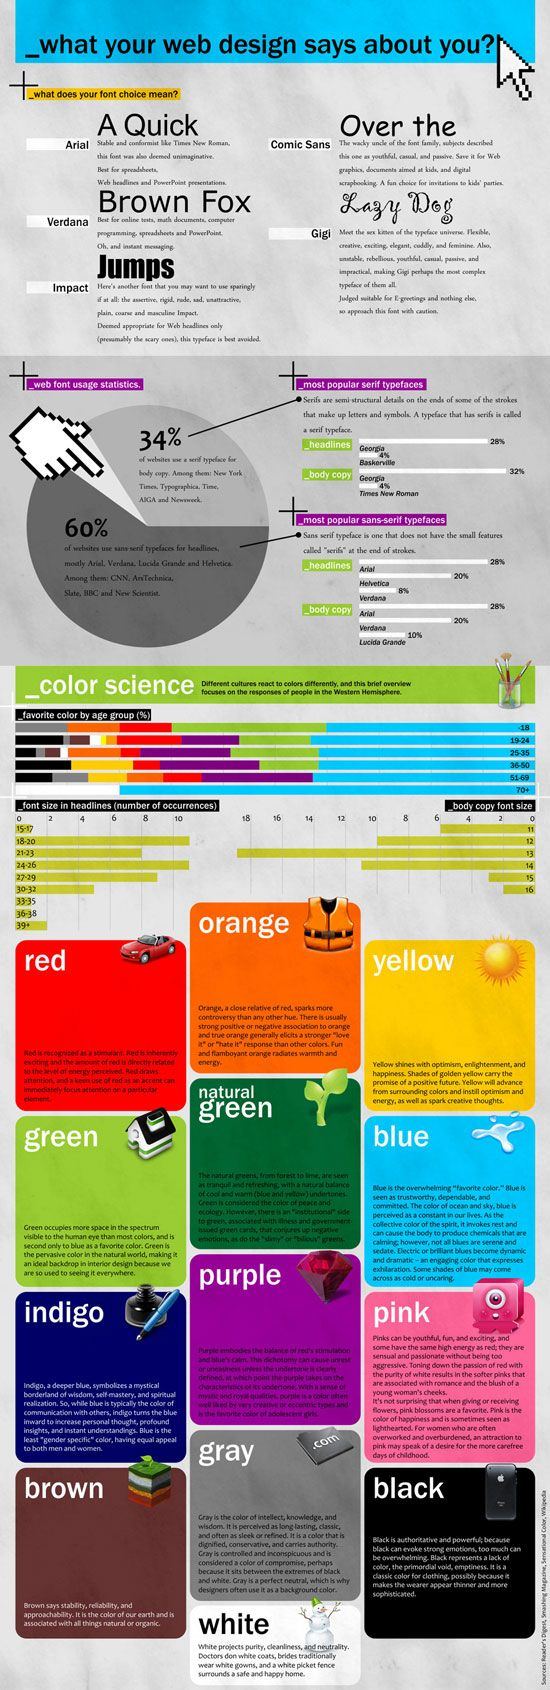 Here is an infographic that delves into the meanings of fonts and colors in the context of web design.